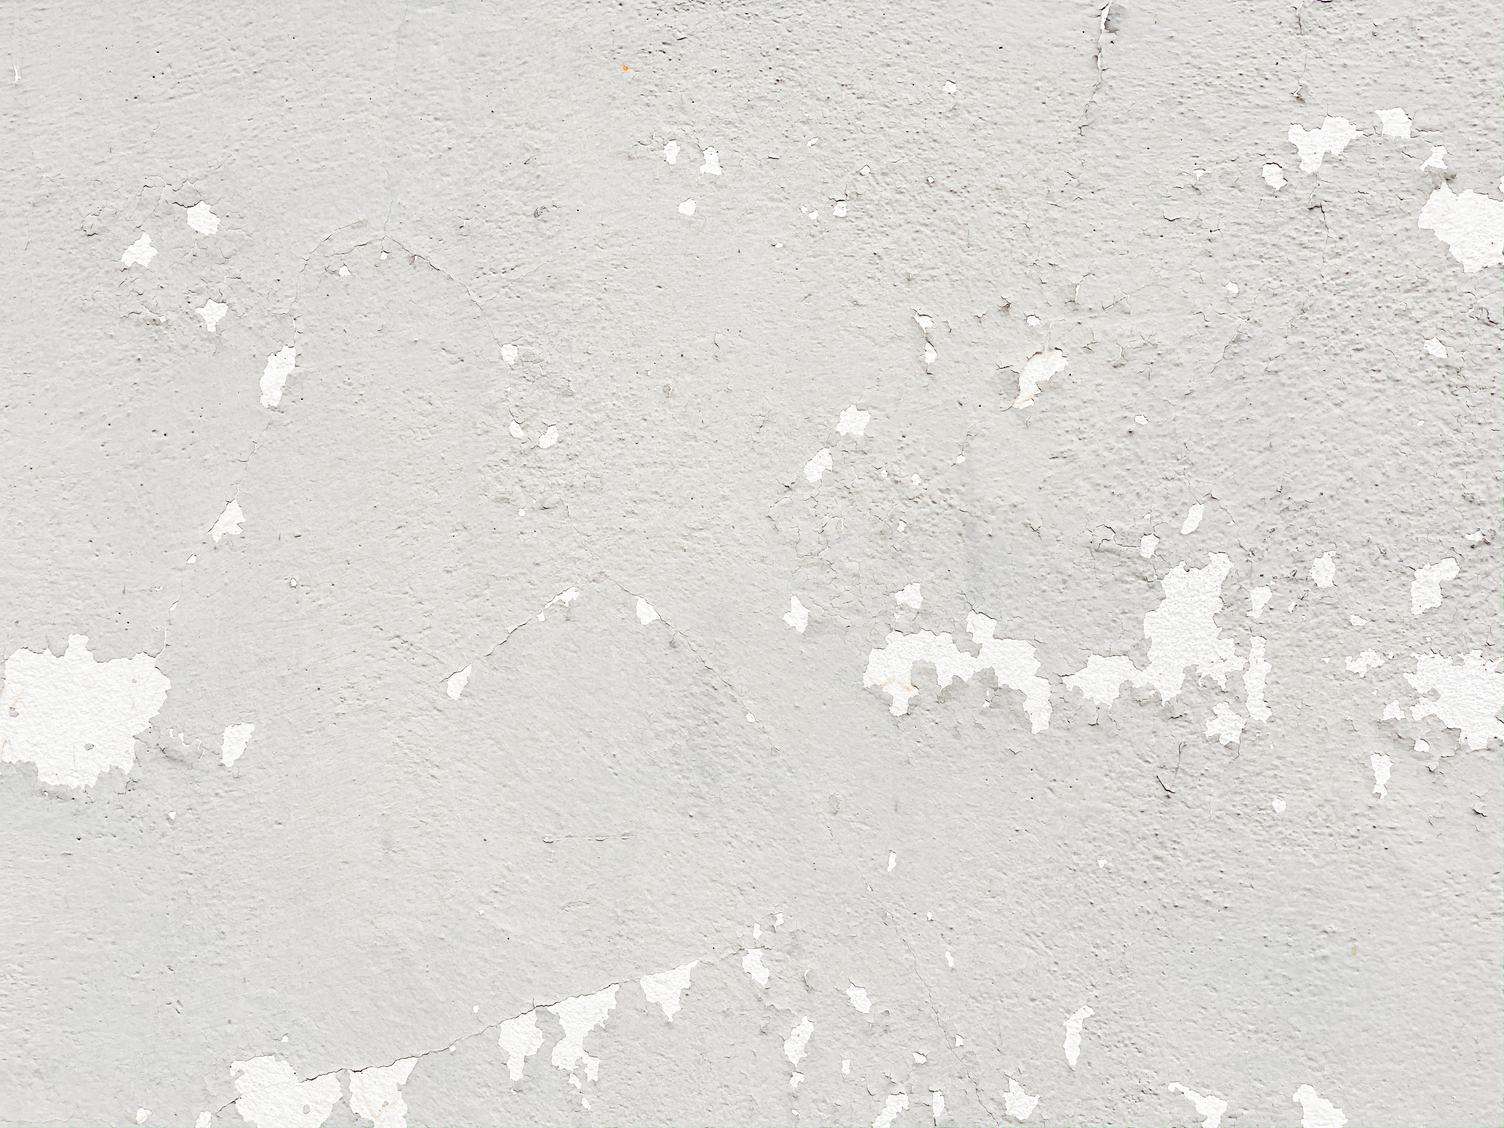 Grunge White Wall with Flaking Paint